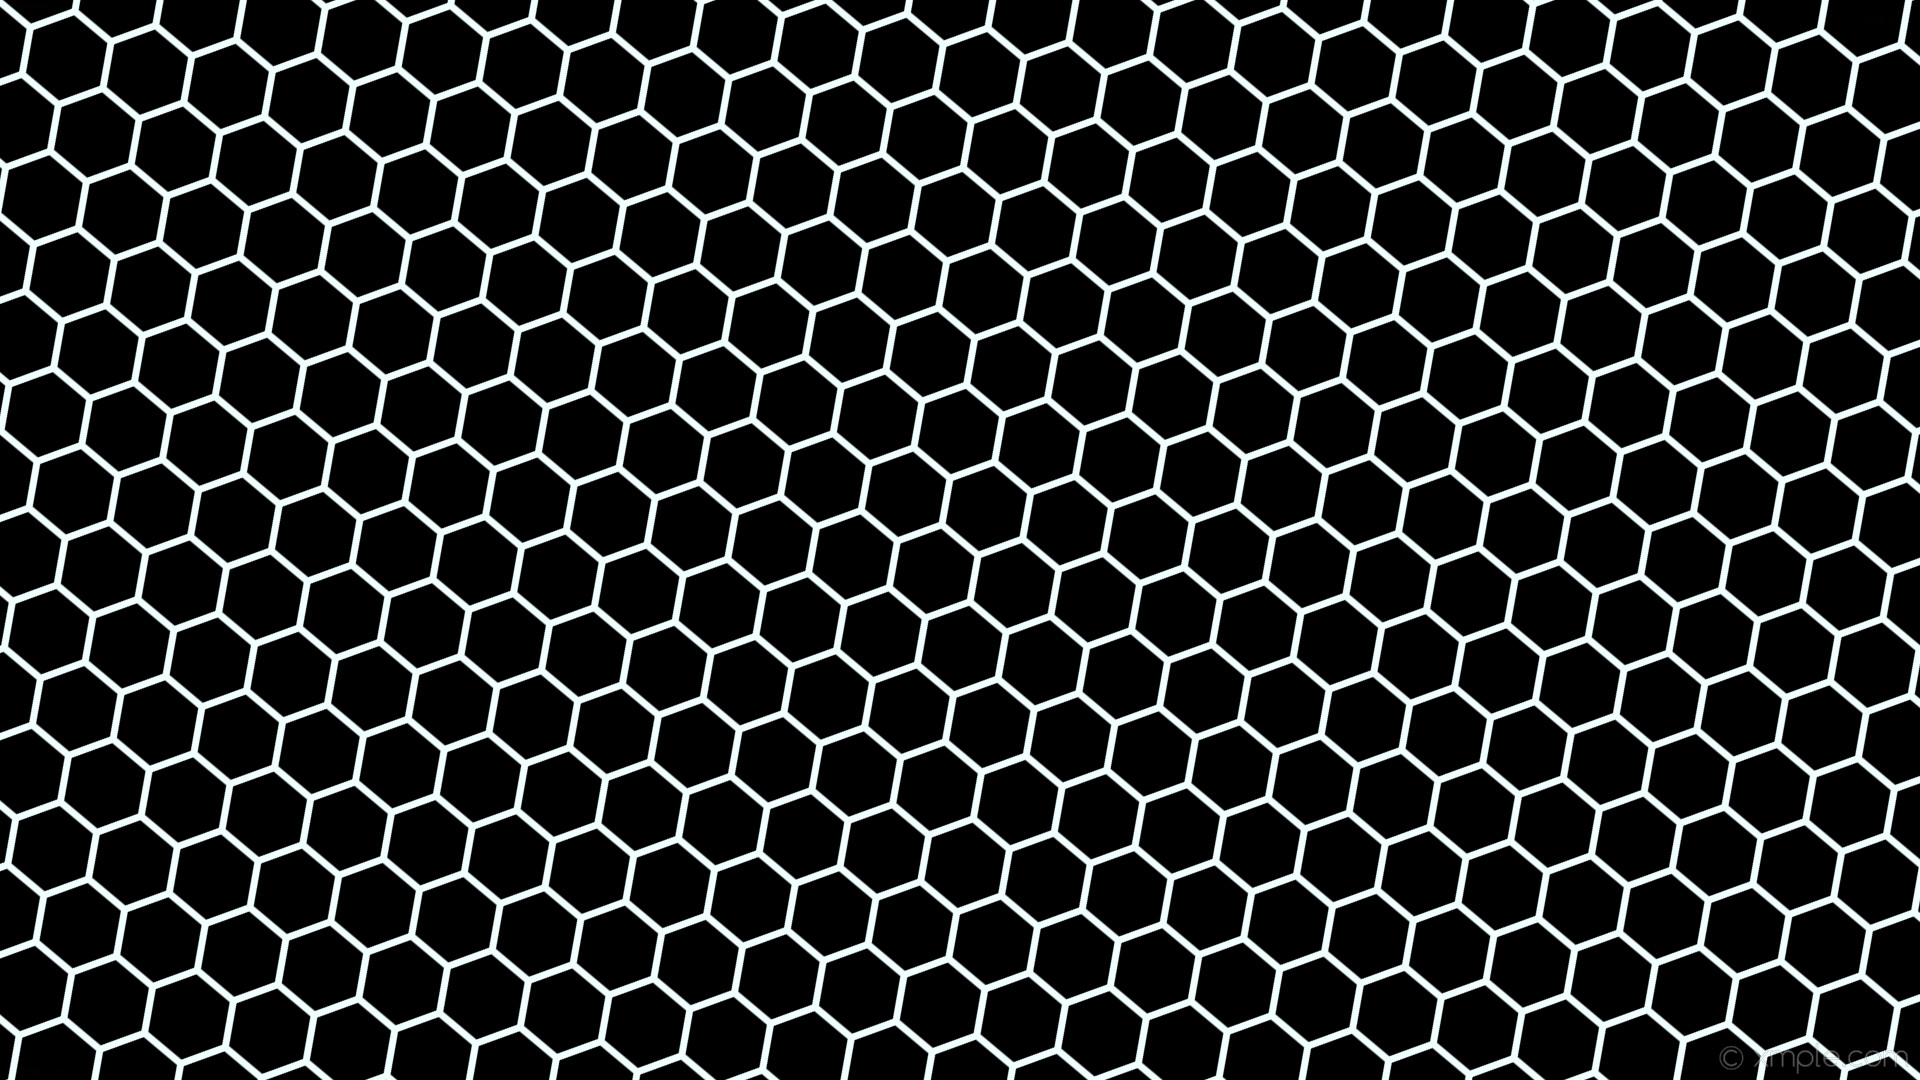 Res: 1920x1080, wallpaper beehive black honeycomb white hexagon azure #000000 #f0ffff  diagonal 50° 7px 82px